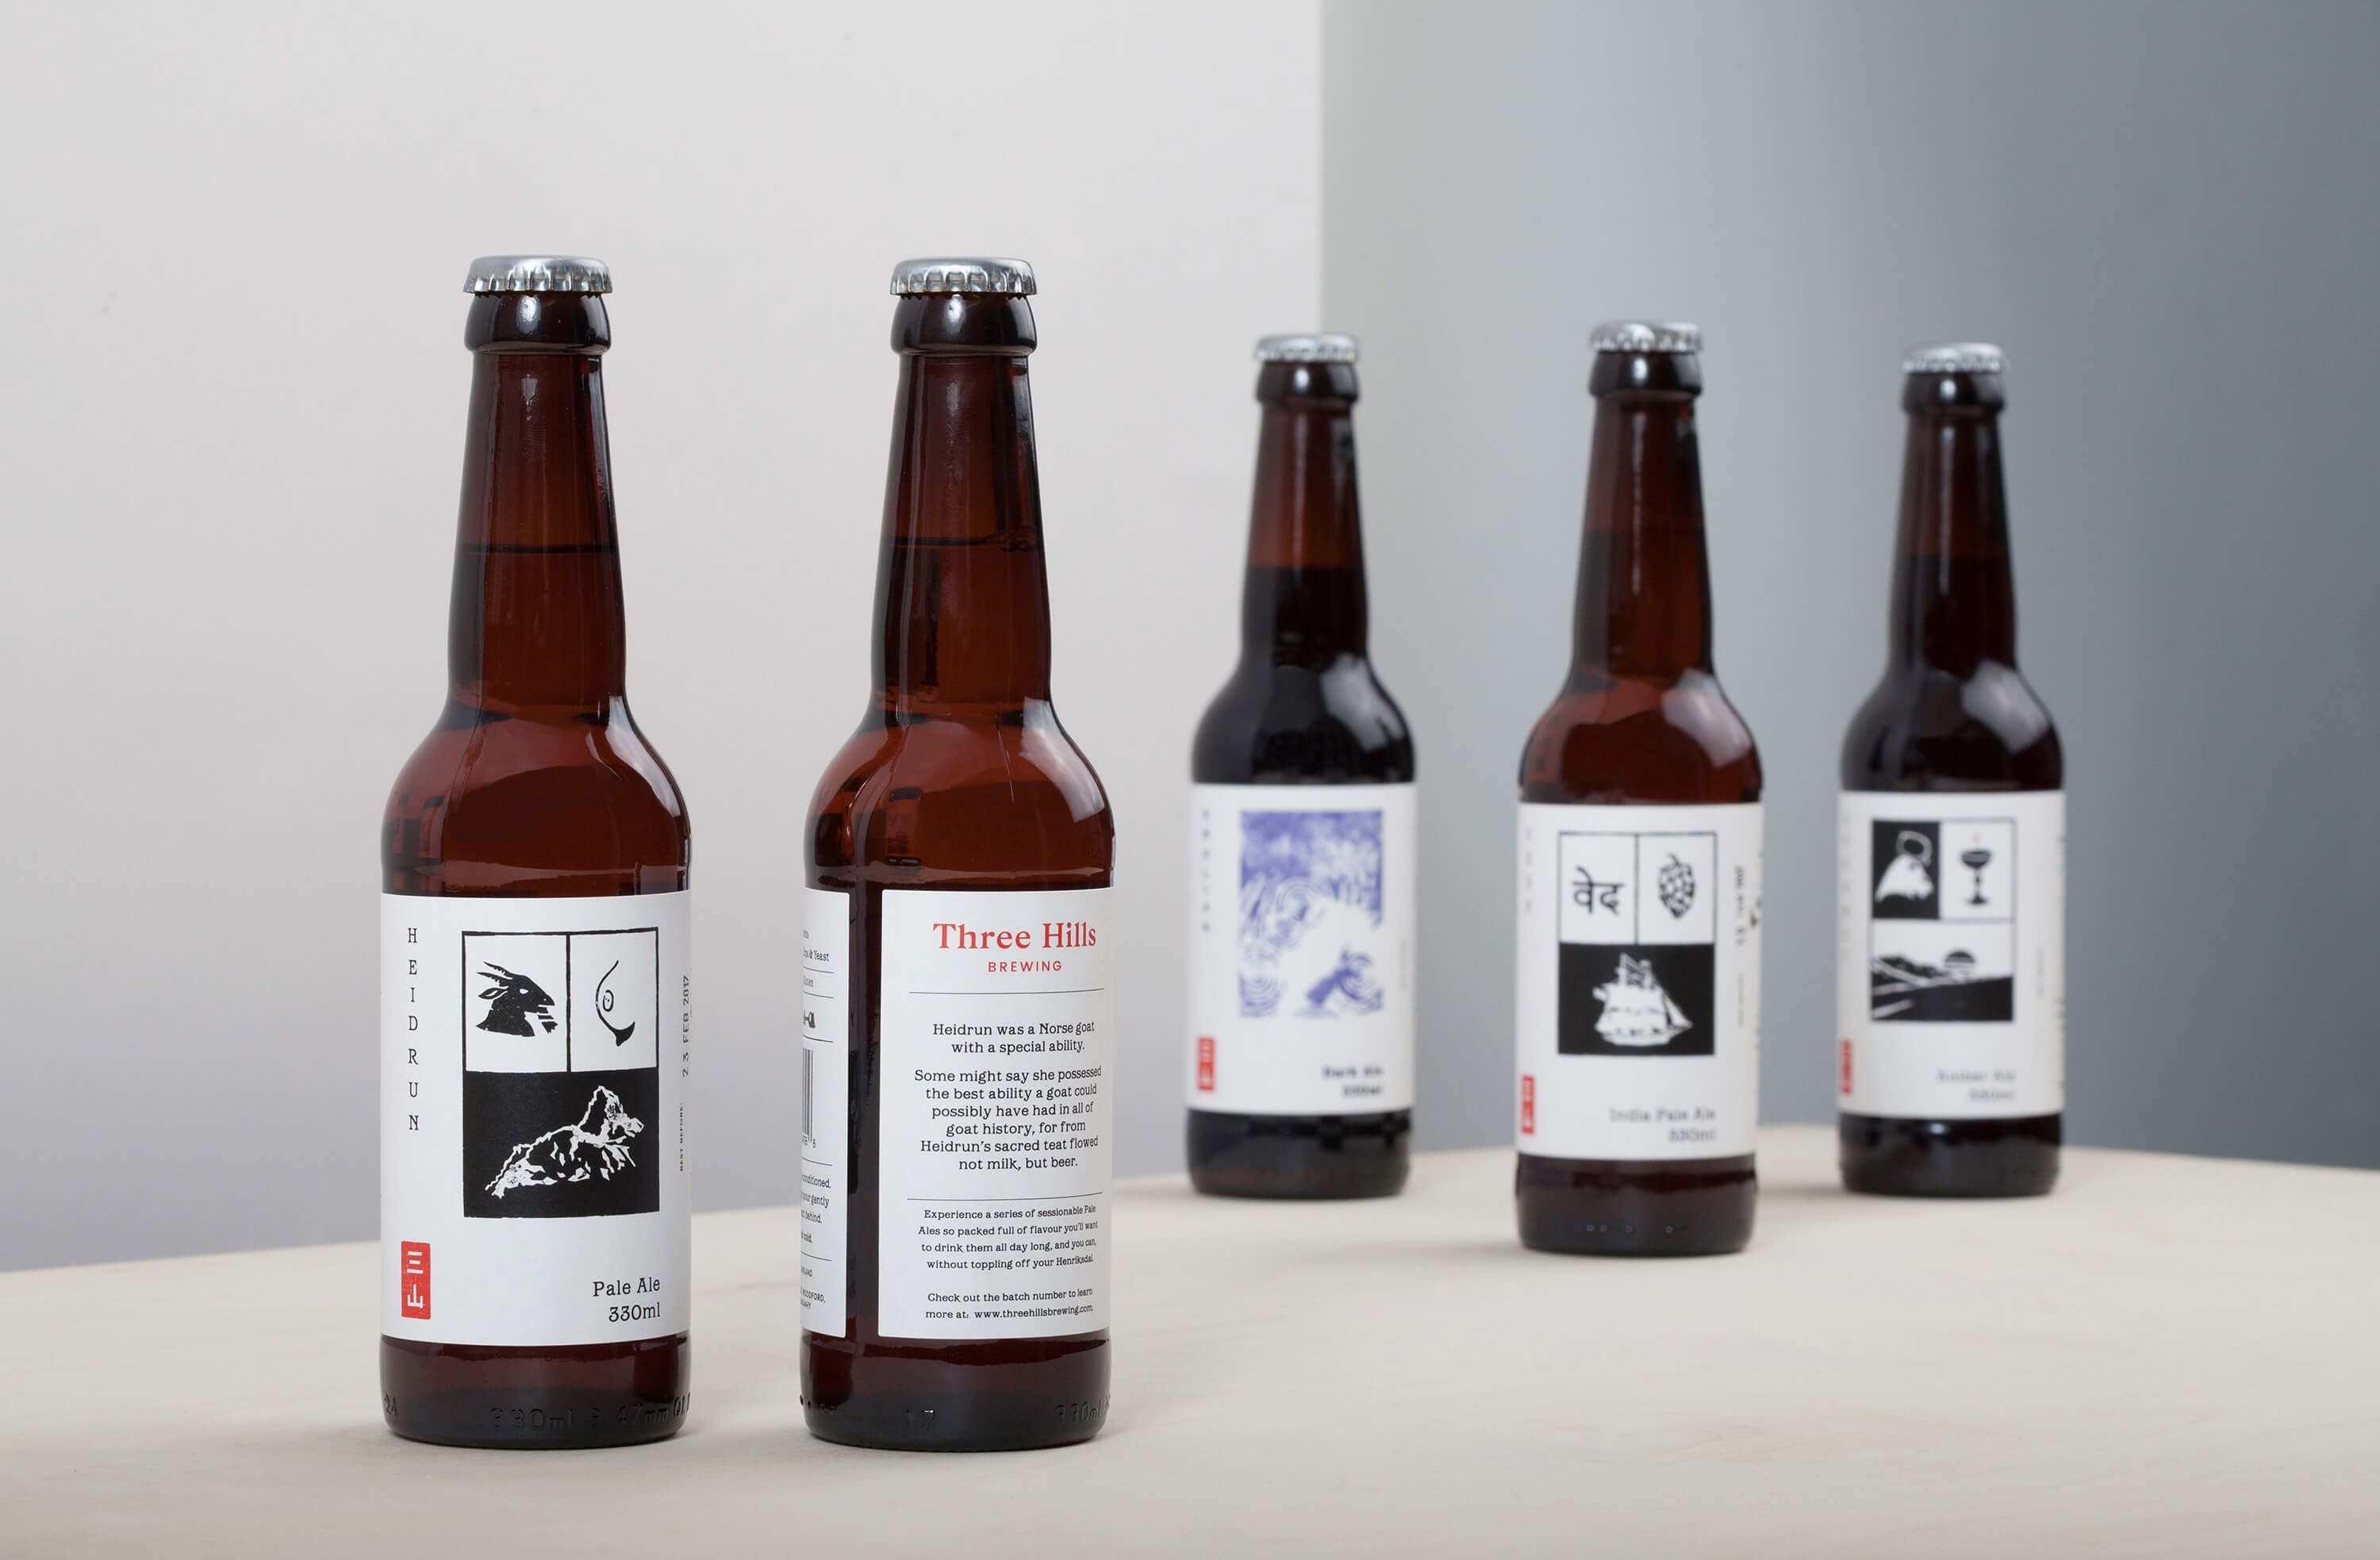 Three Hills, a newly founded brewery based in Northamptonshire ...